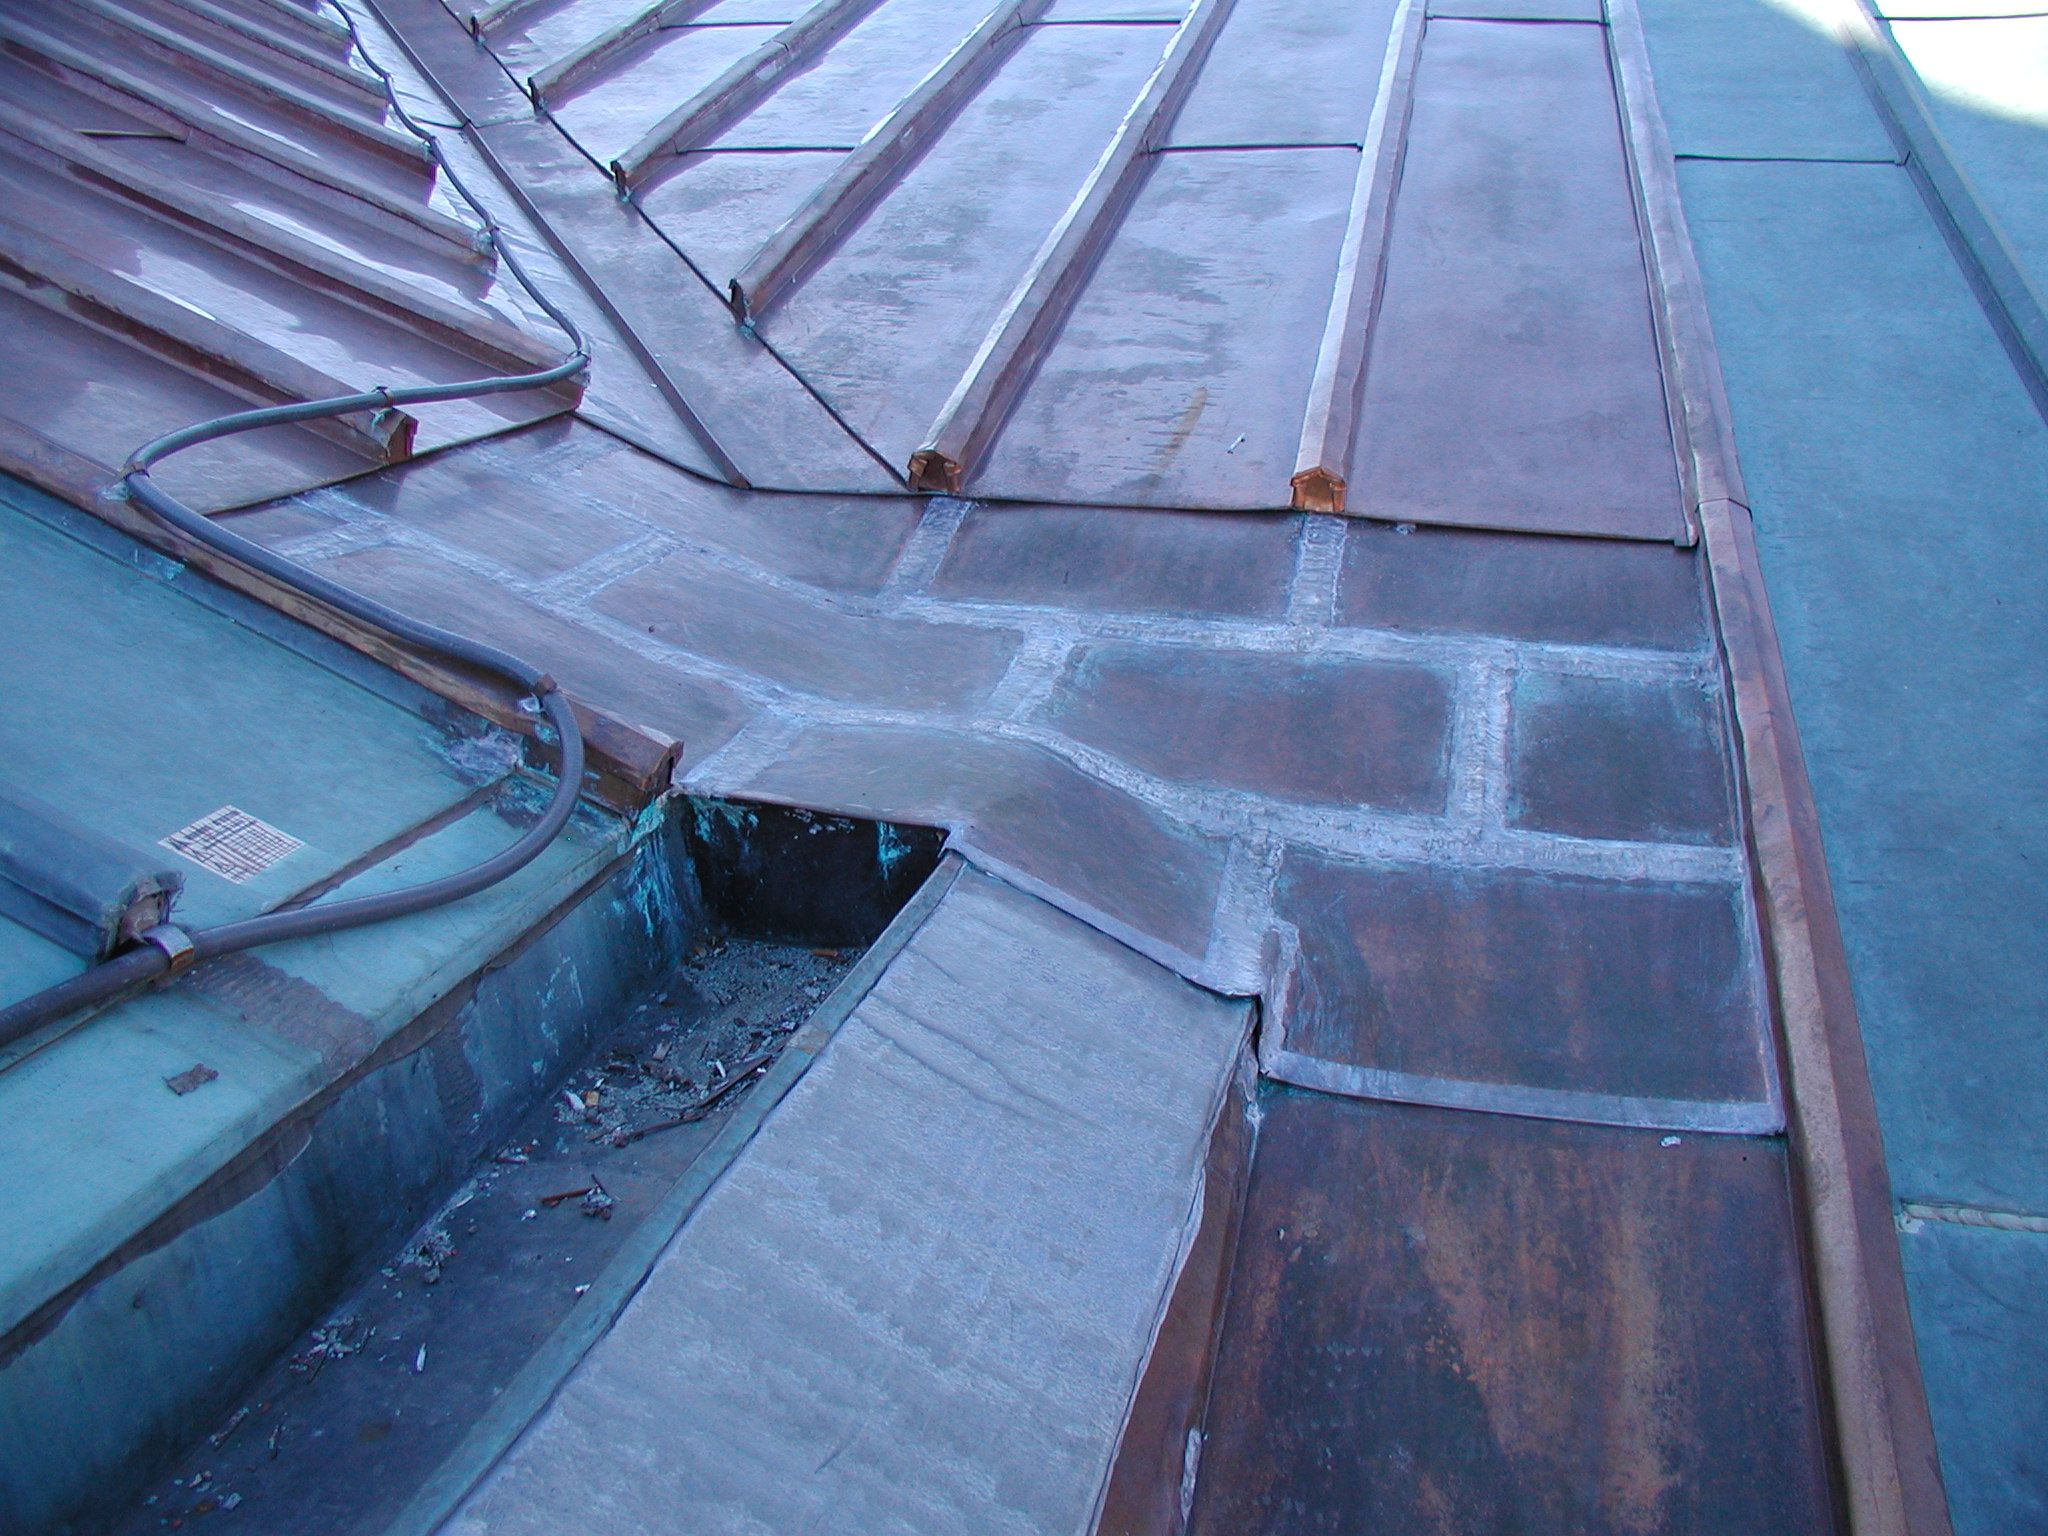 Unusual Conditions Such As This Combination Of Soldered Flat Seam Roofing With Steep Slope Batten Seam Demand Customized Des Copper Roof Roofing Roof Design